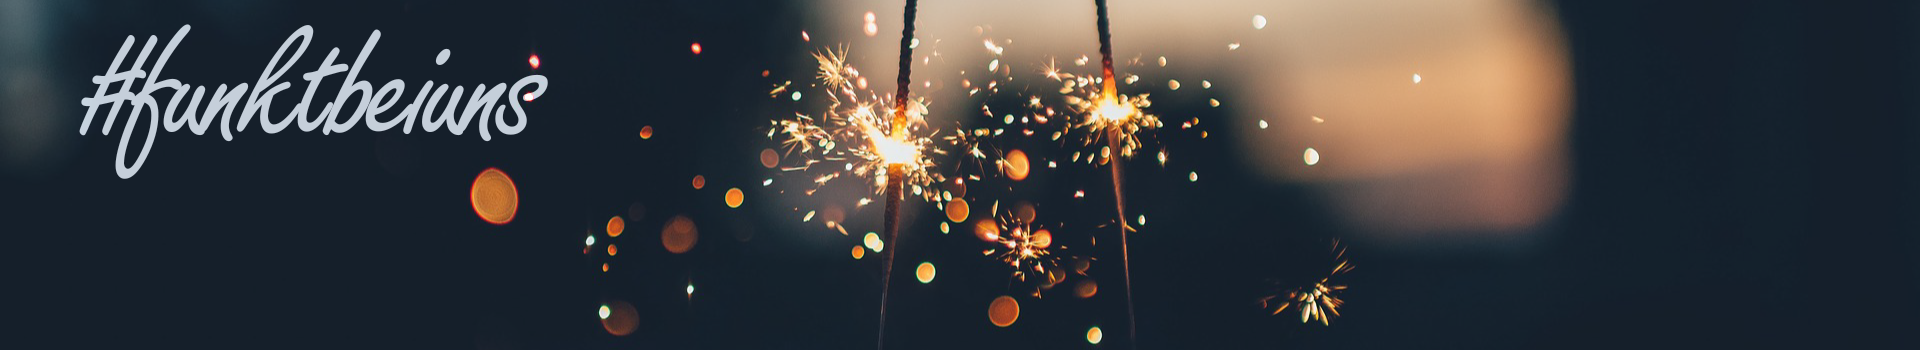 You are currently viewing Moments-Silvestershow mit Feuerwerk